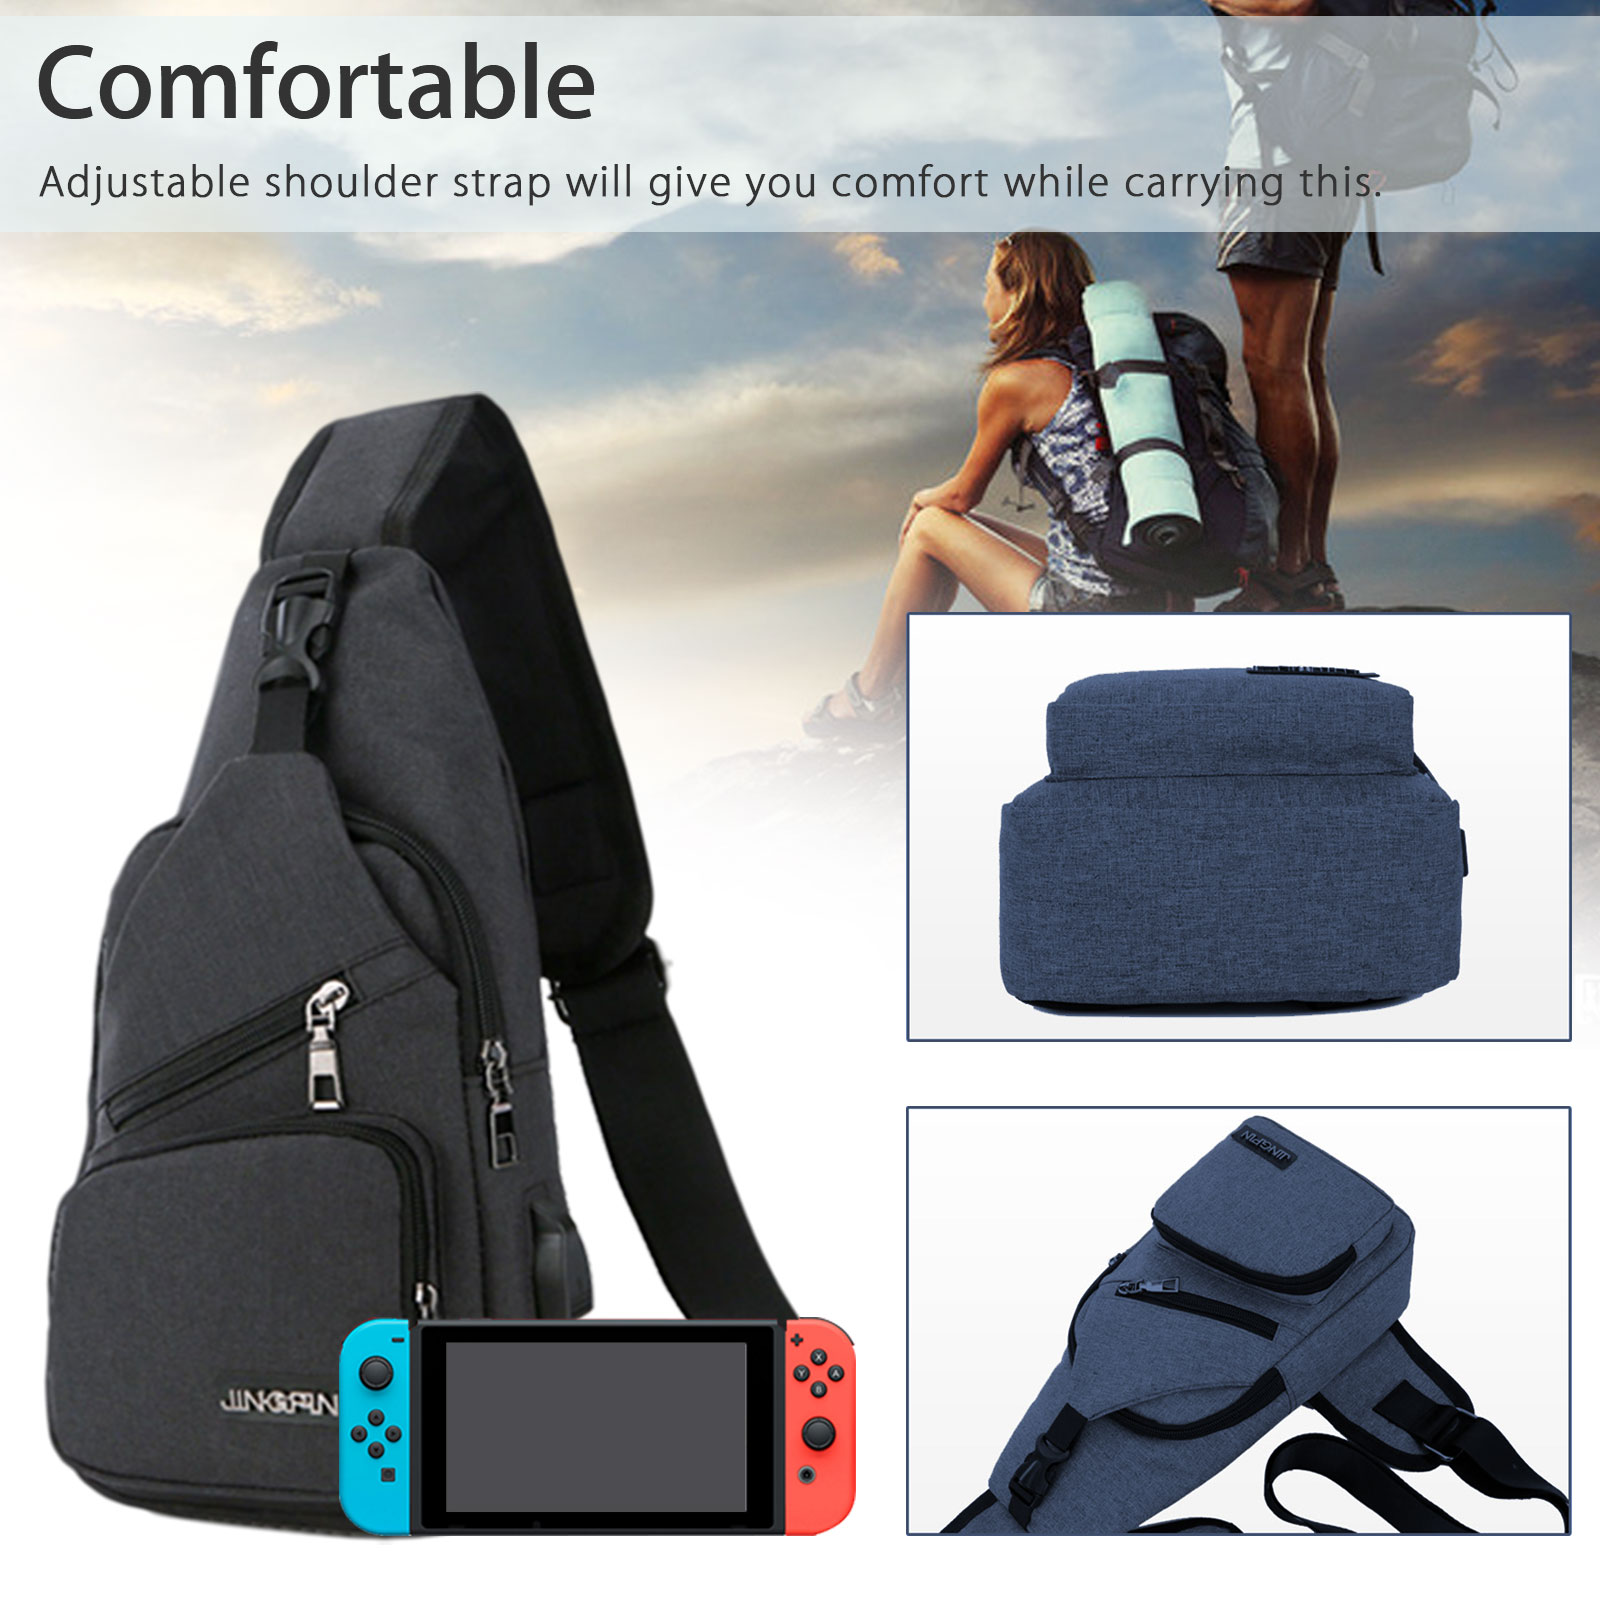 Backpack-Crossbody-Travel-Bag-For-Nintendo-Switch-Console-Joy-Cons-Accessories thumbnail 7